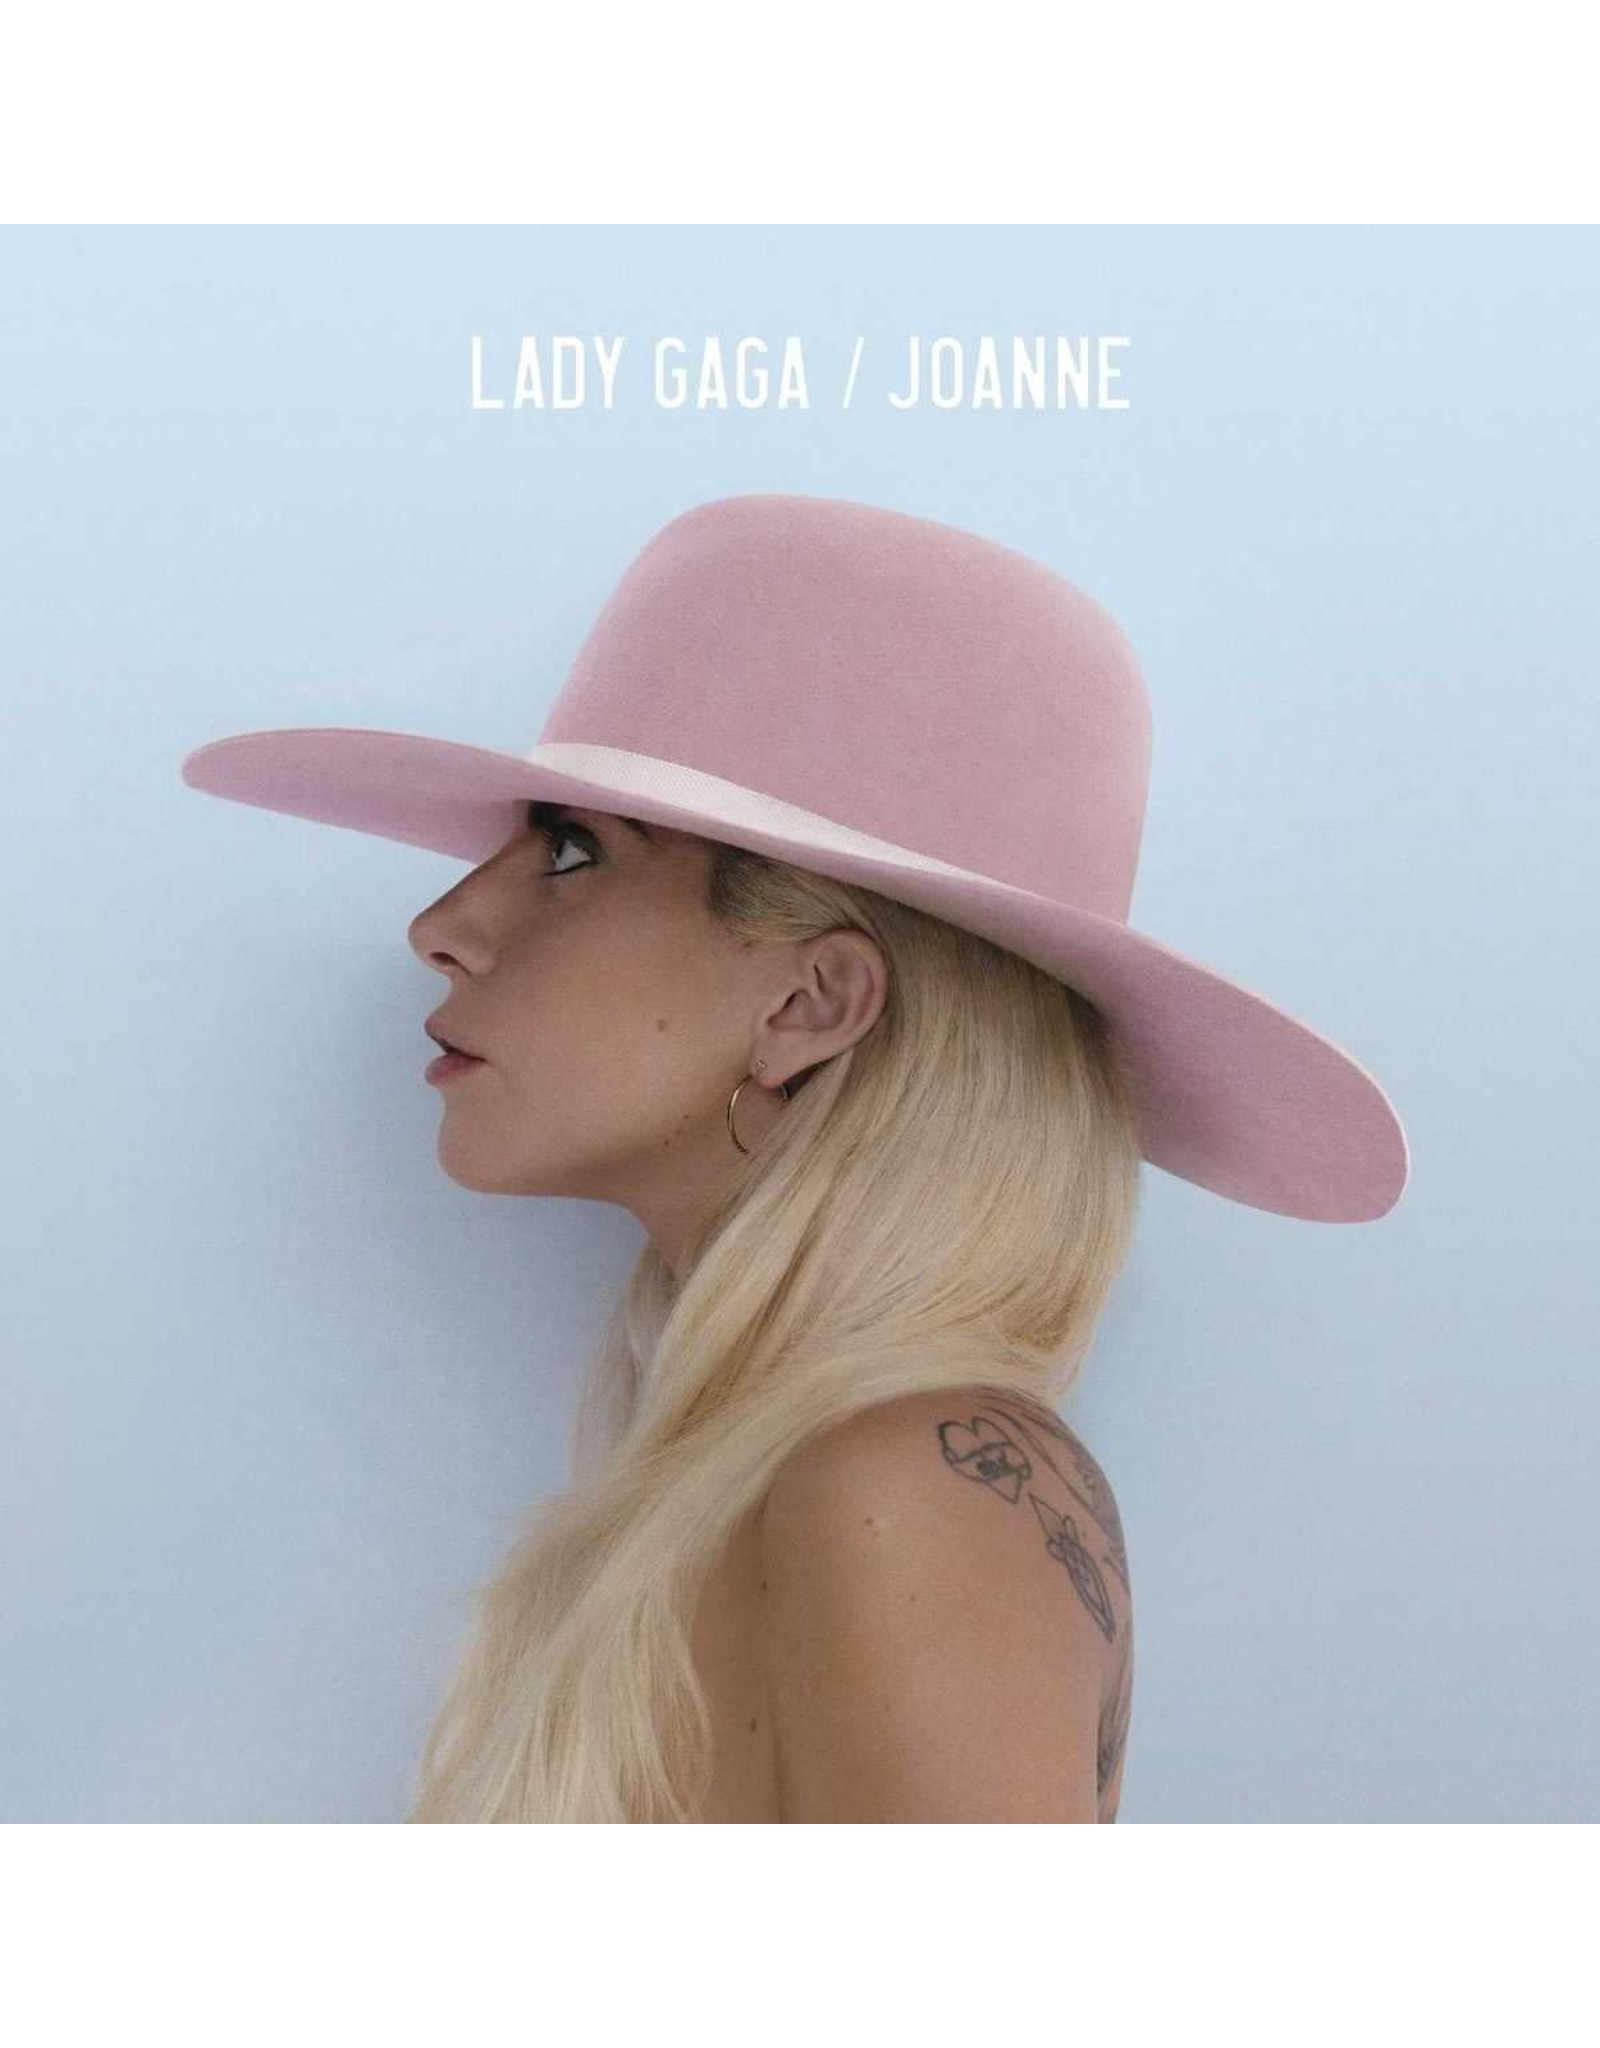 Lady Gaga - Joanne (Deluxe Edition)